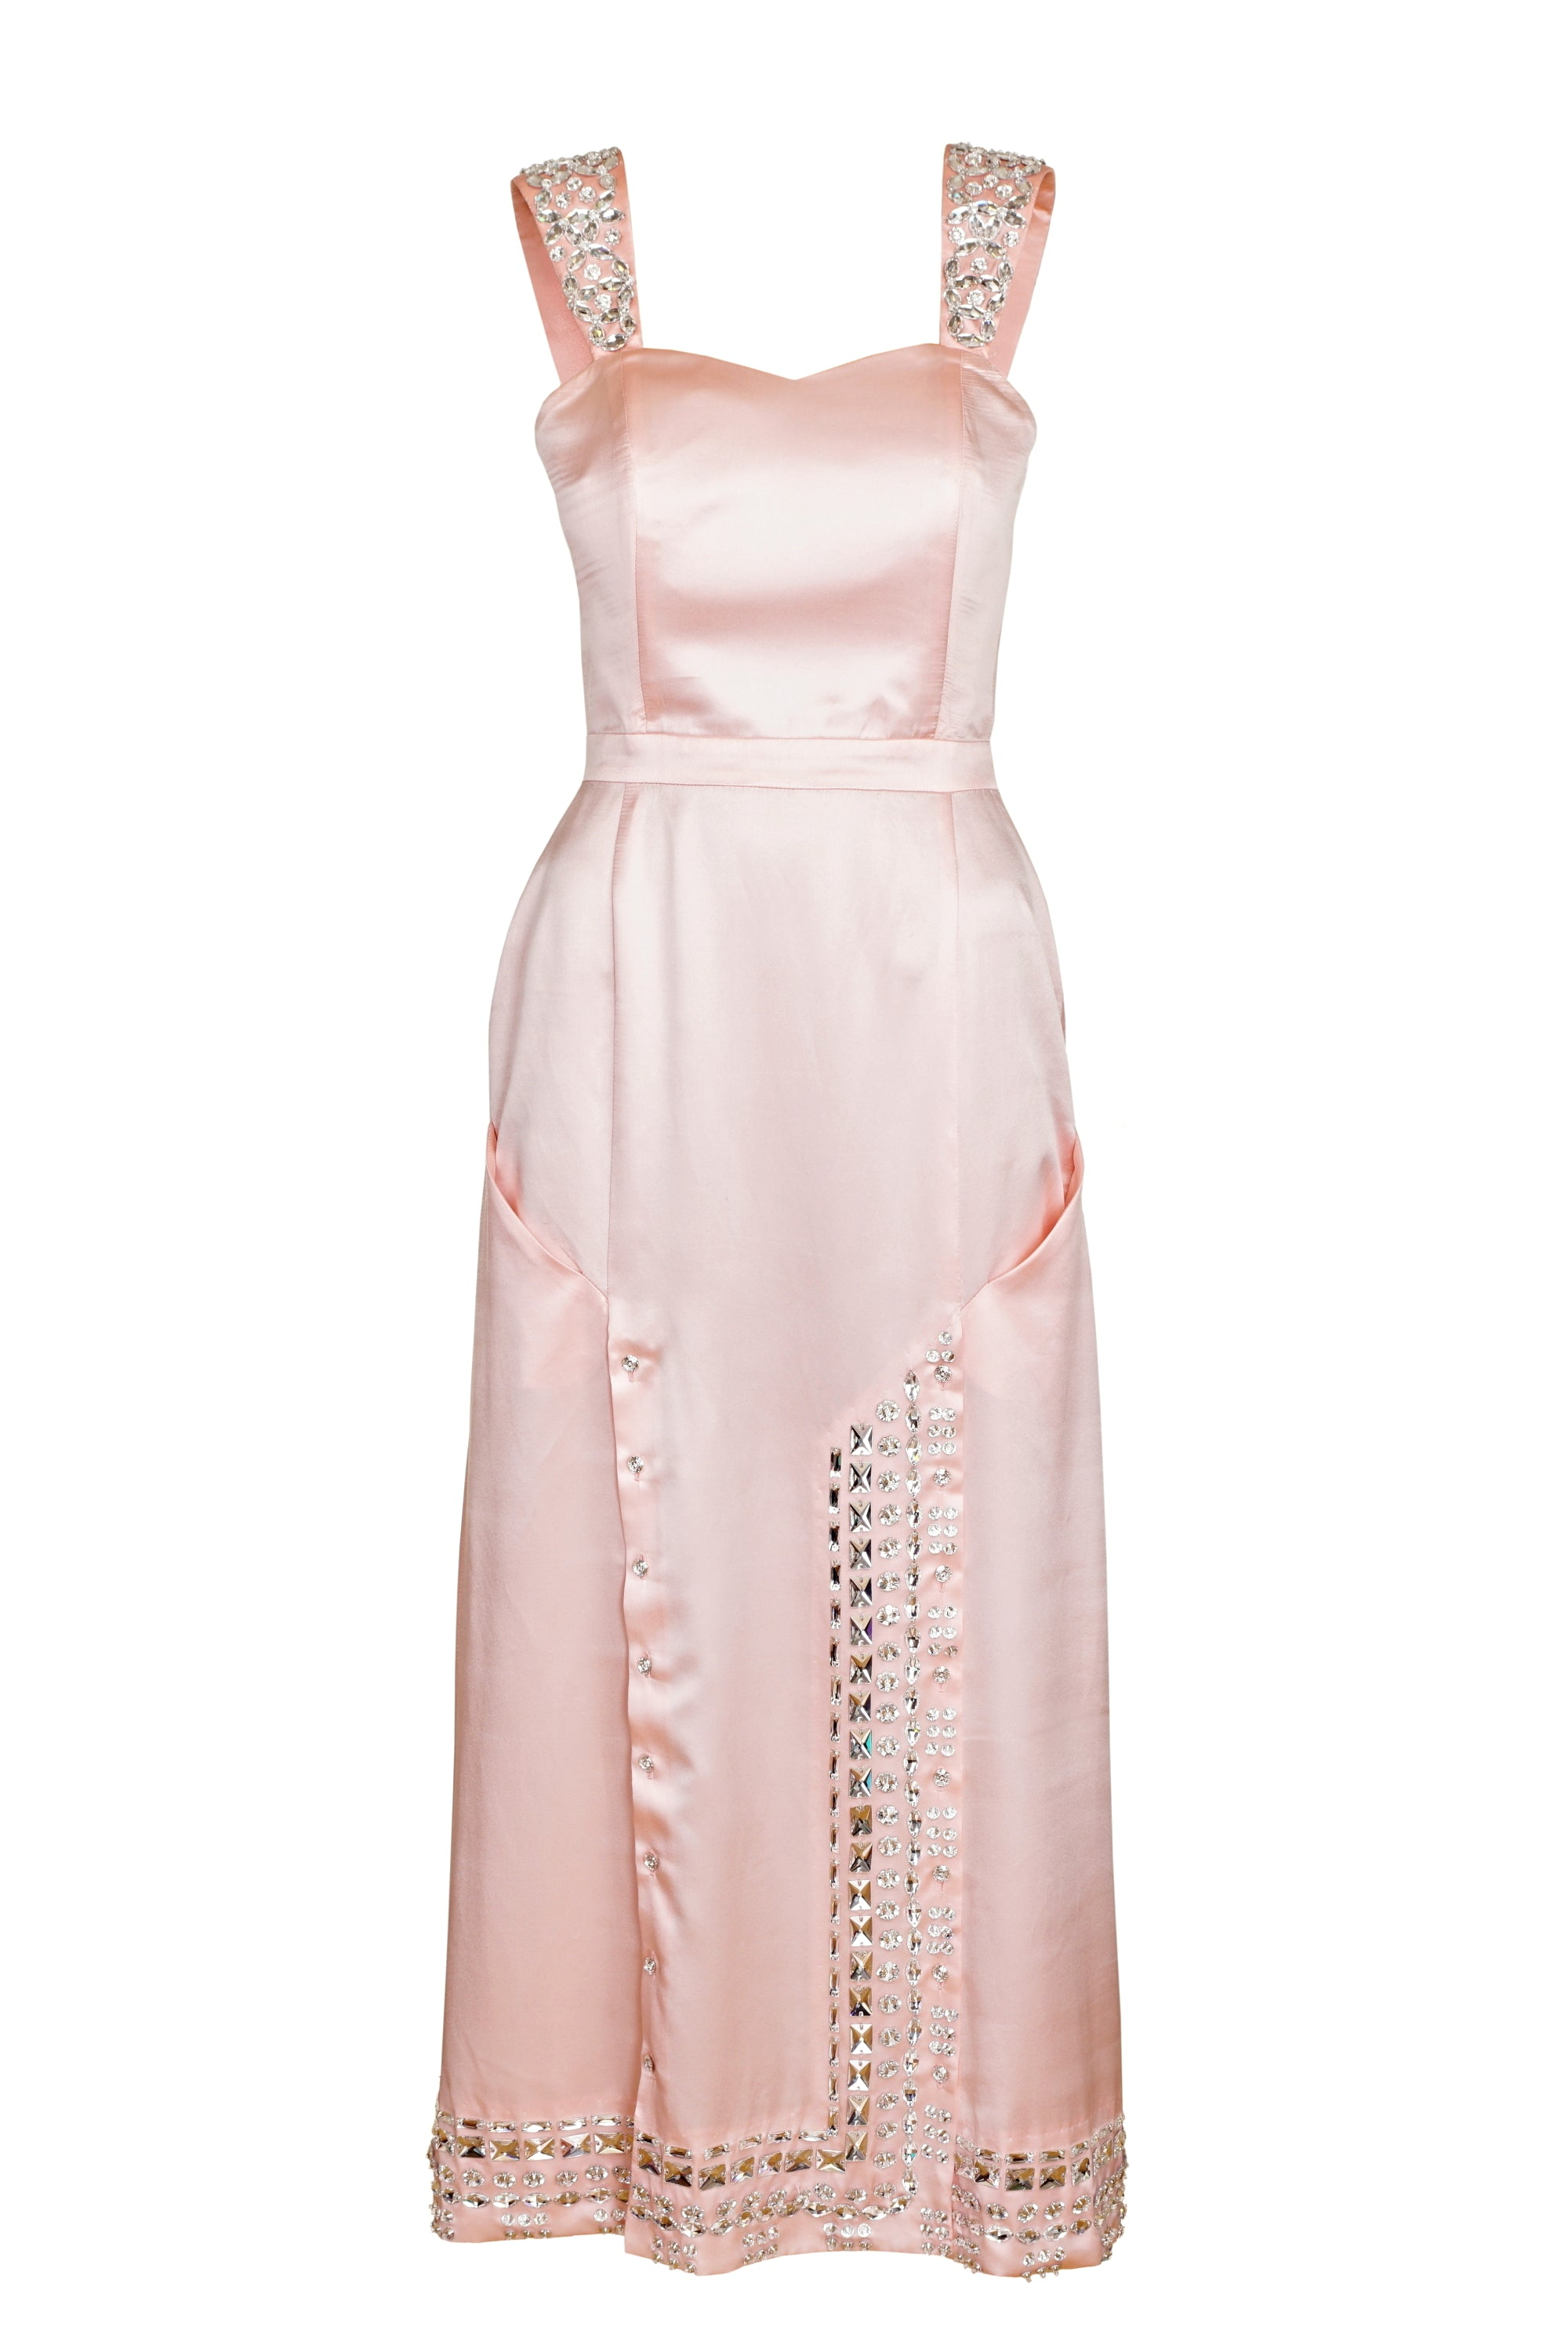 LIGHT PINK CRYSTAL EMBELLISHED DRESS